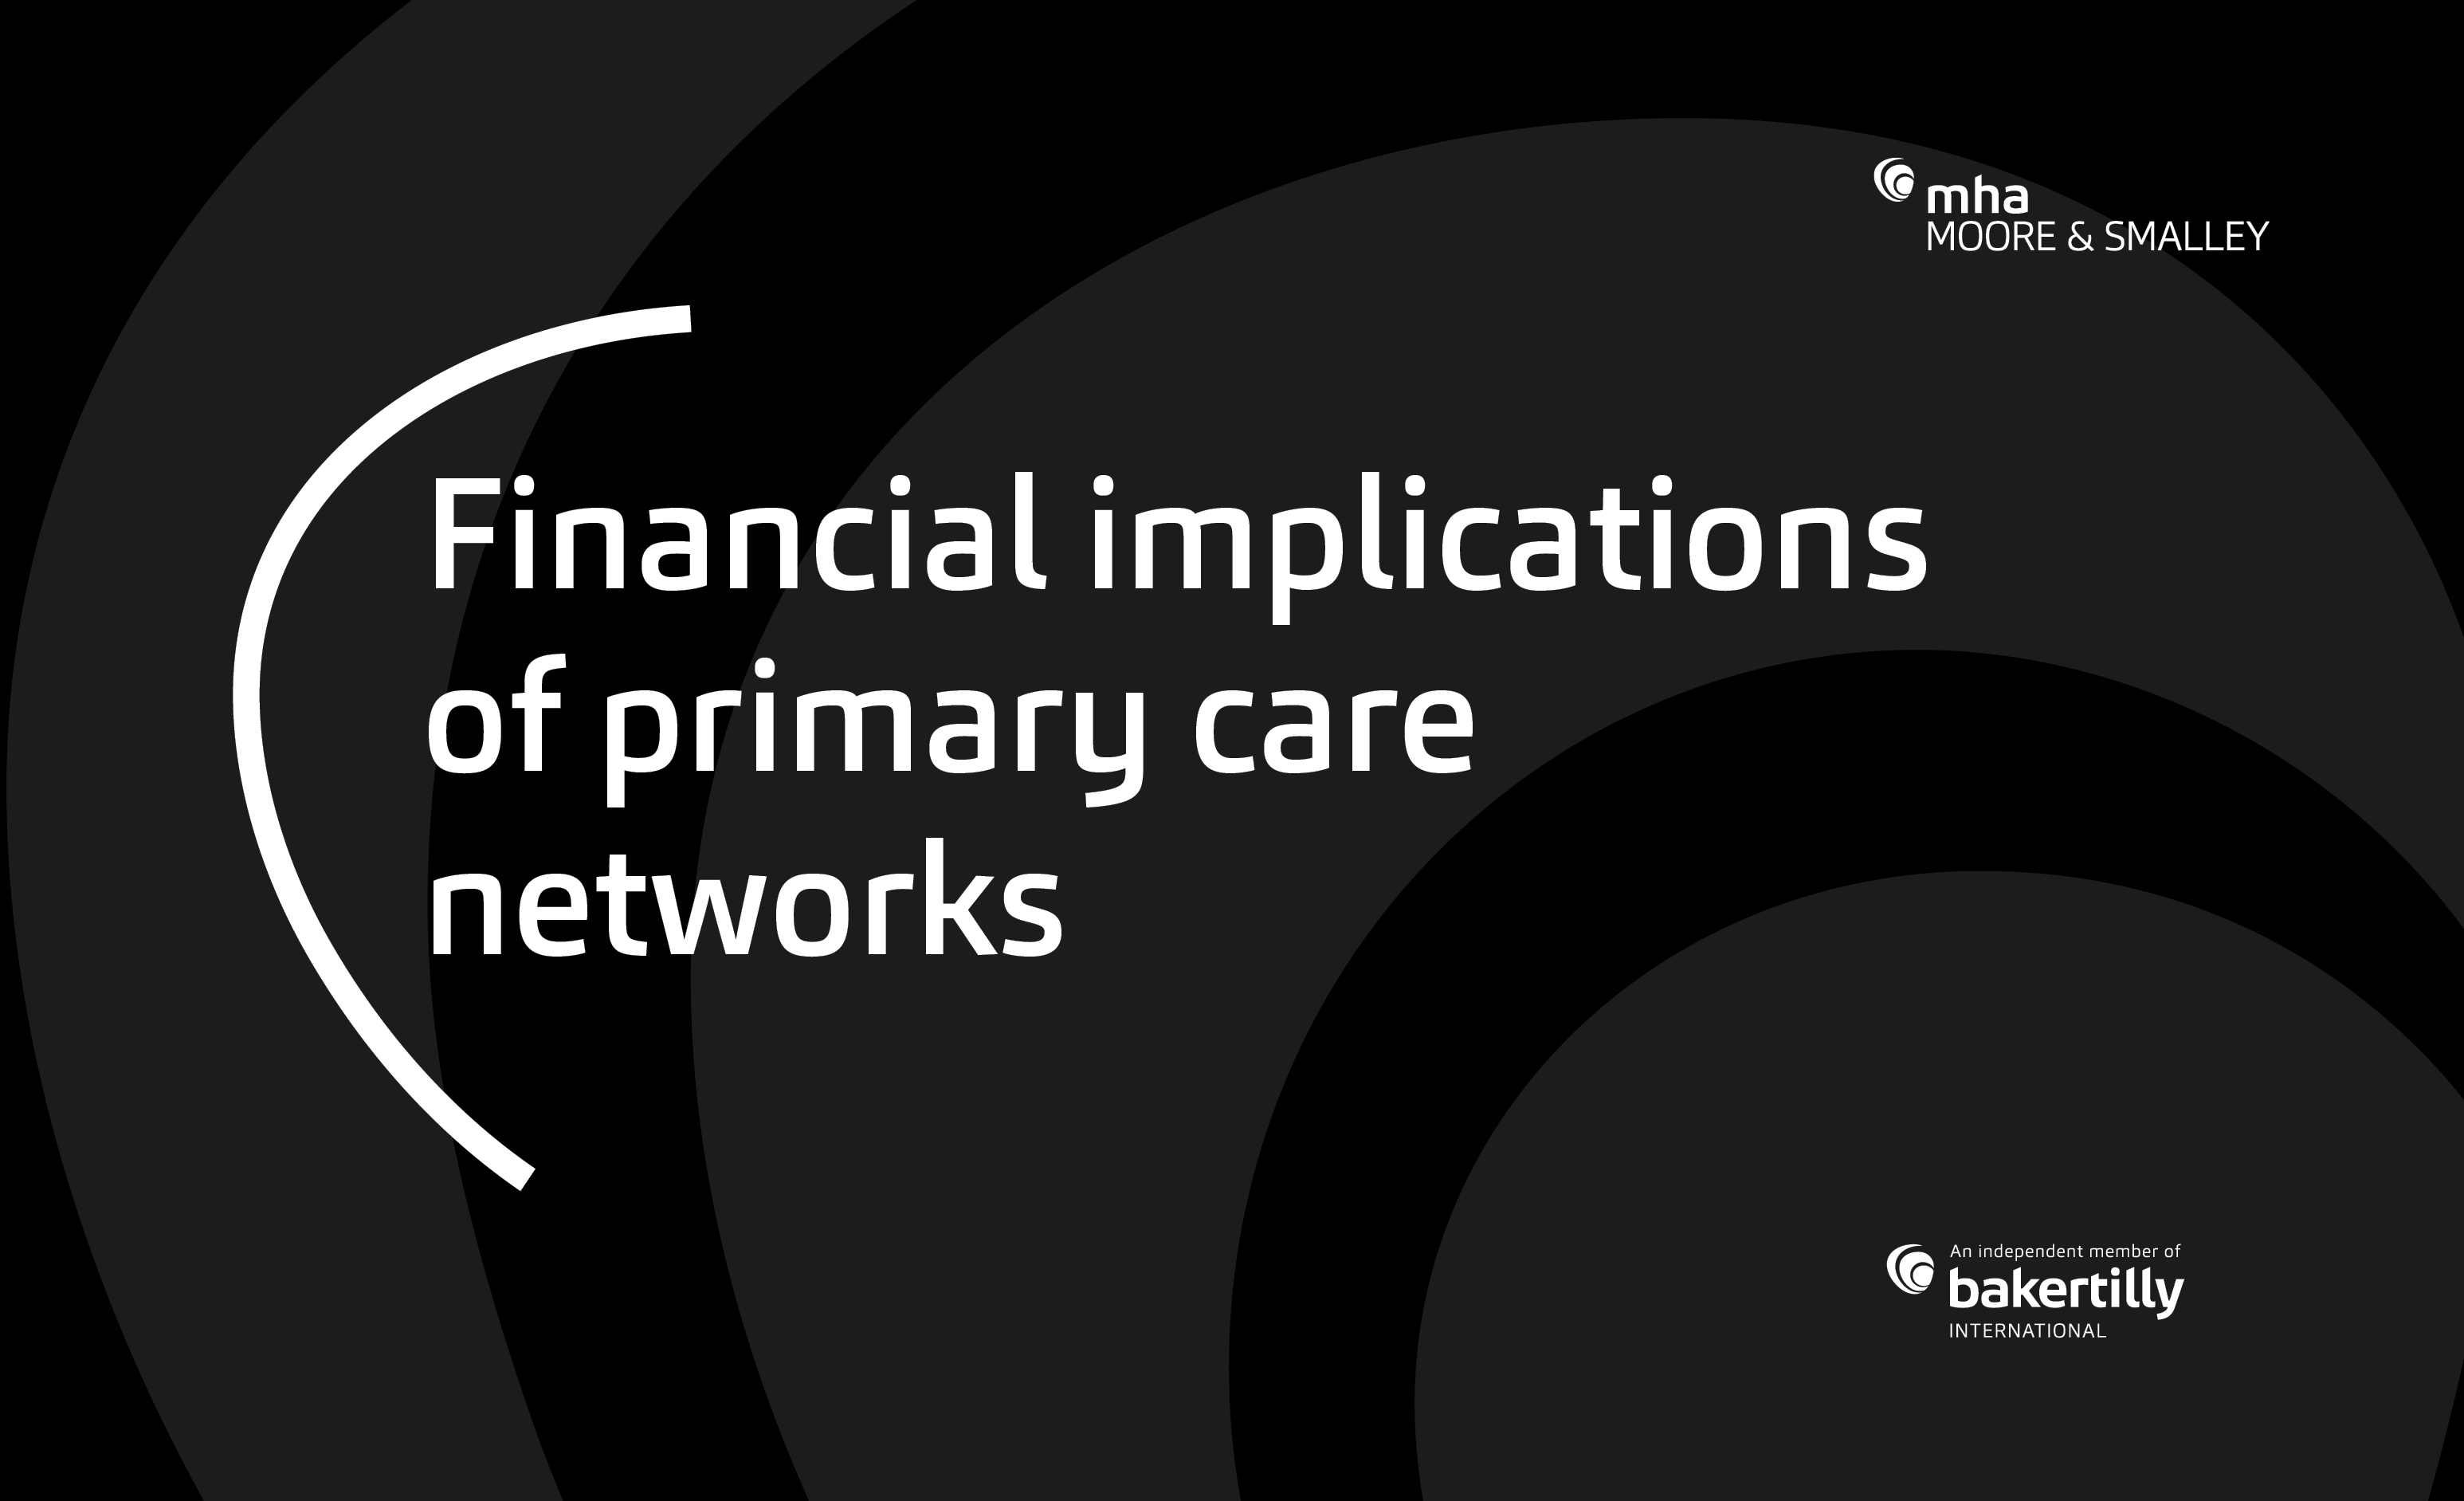 Financial implications of primary care networks